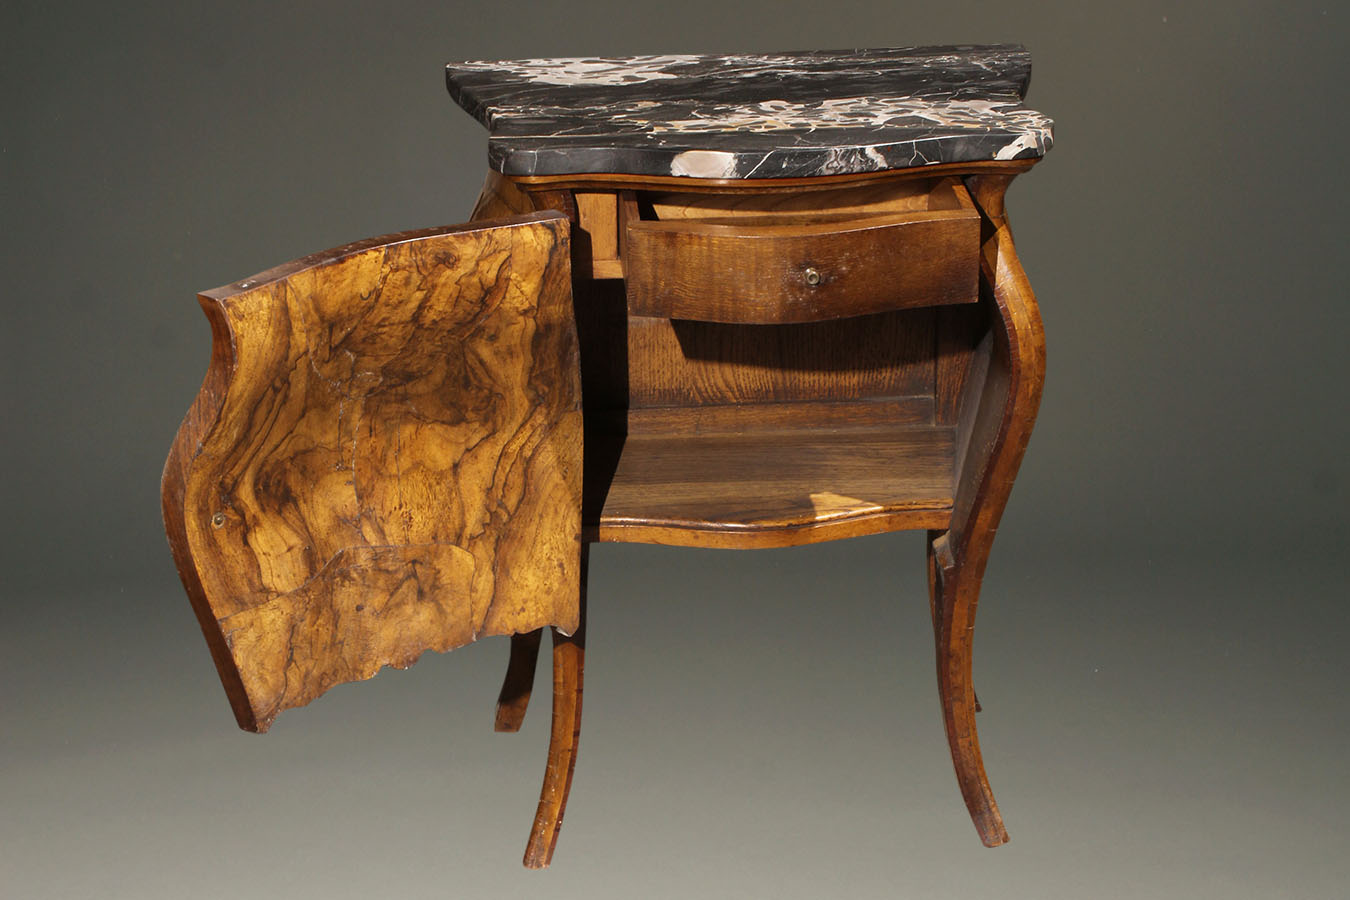 Incroyable A5649D Antique Commode Stand Bombe Italian Burl Marble